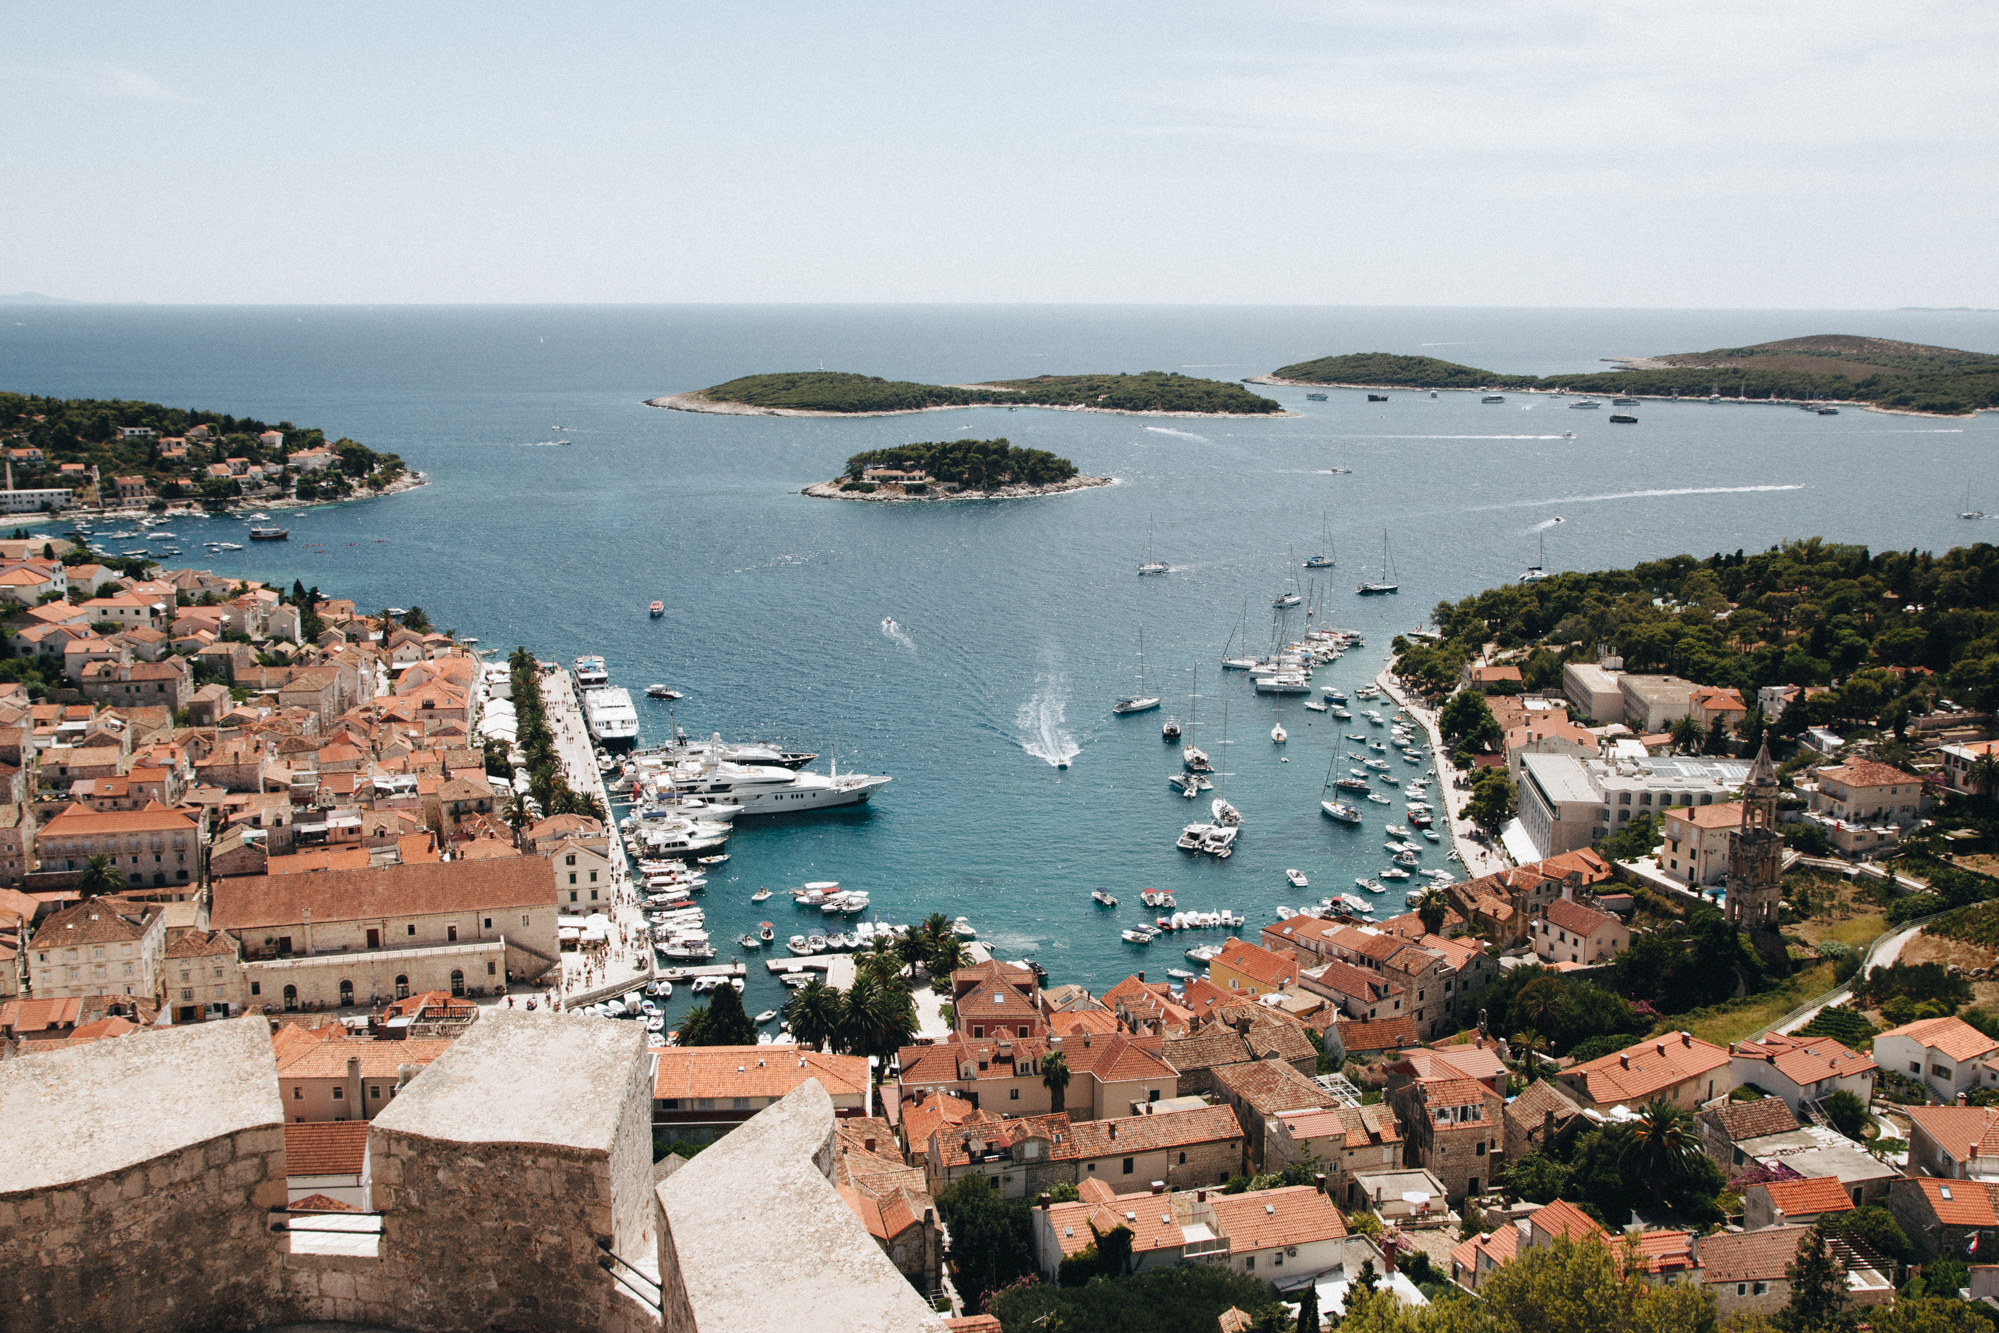 View of Hvar from Hvar Fortress